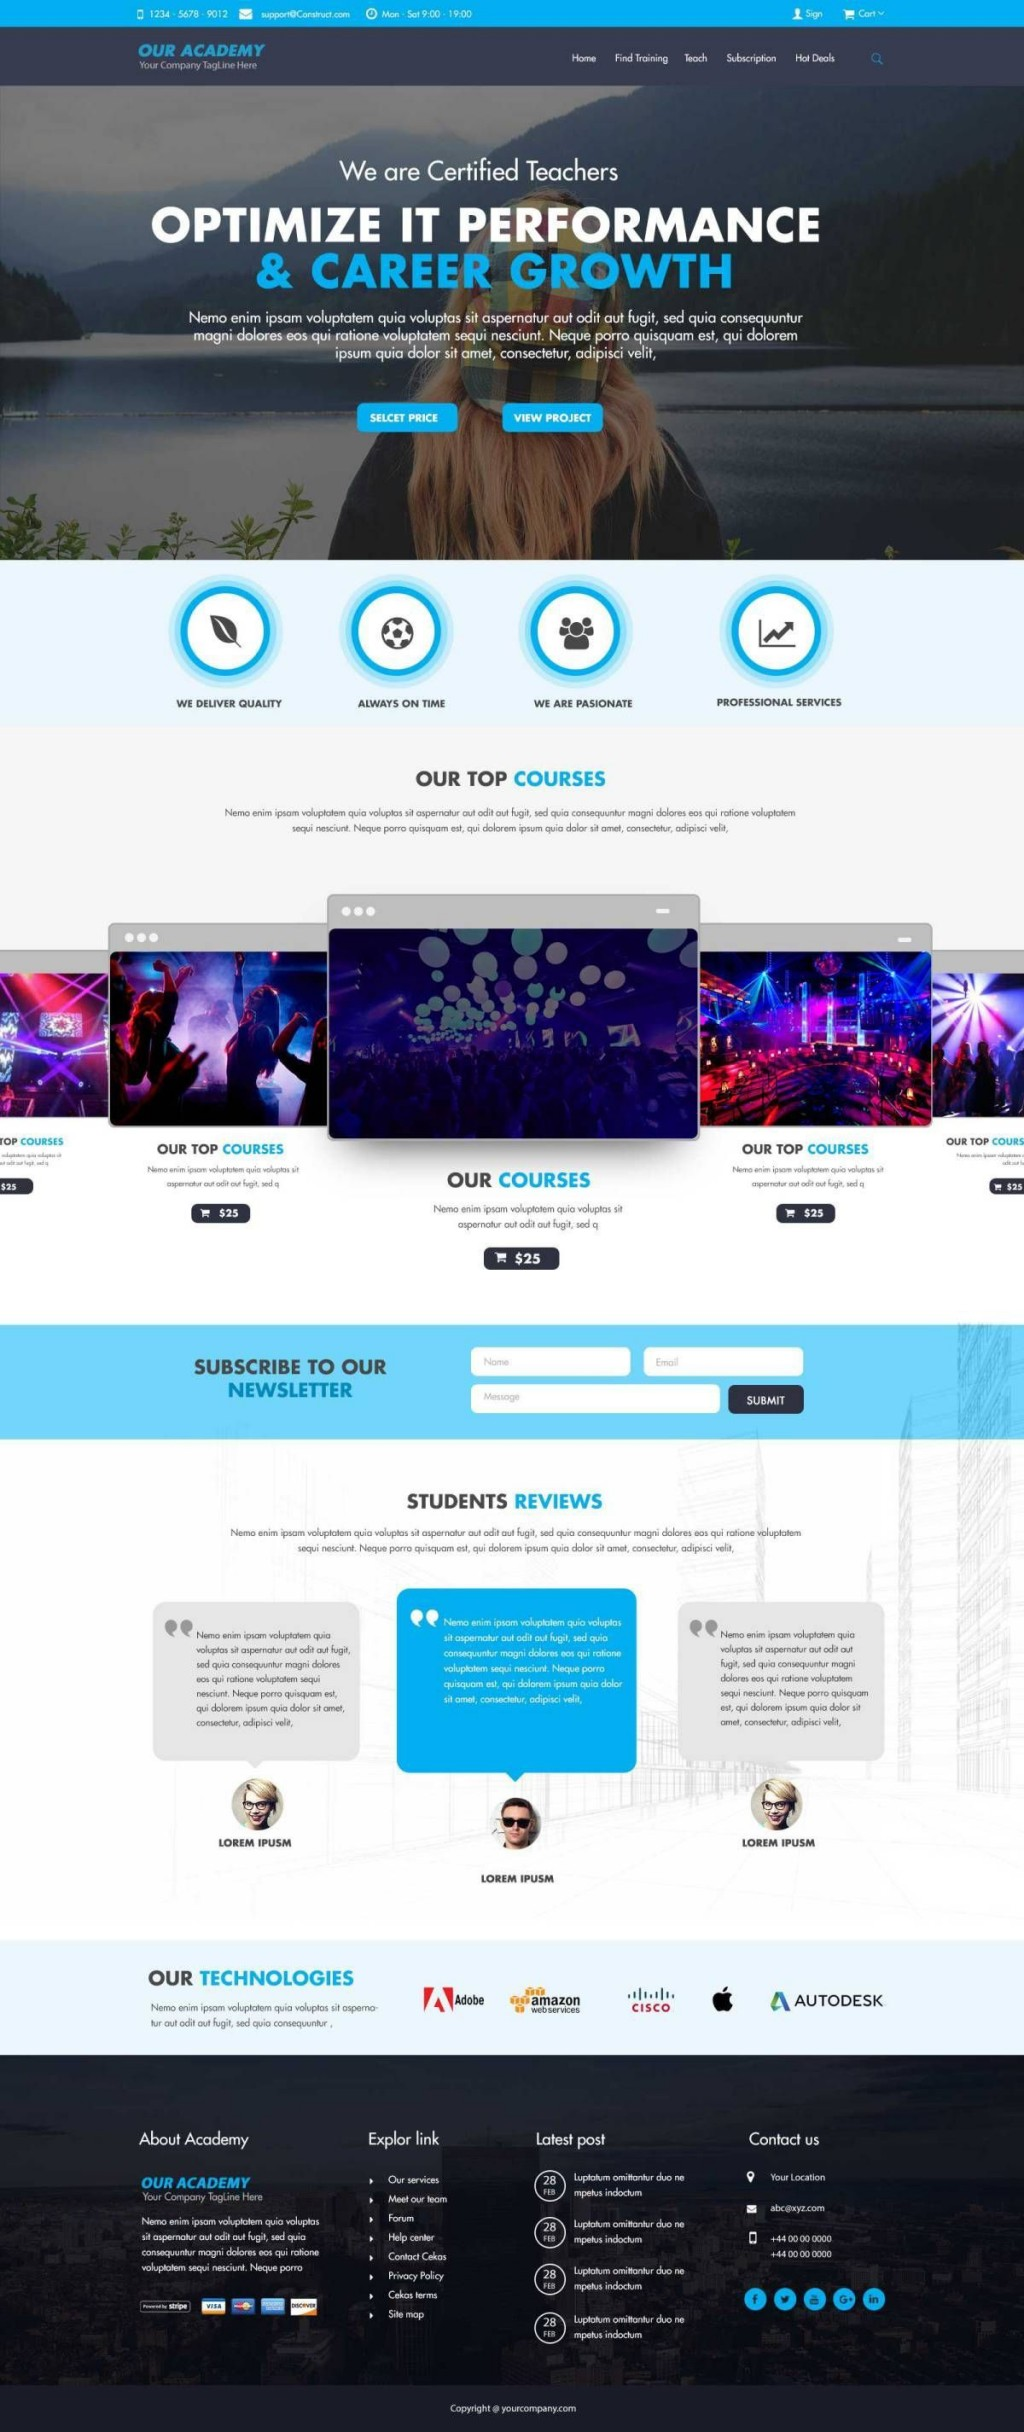 007 Unusual Website Template Html Free Download High Def  Indian School Software Company SpiceLarge